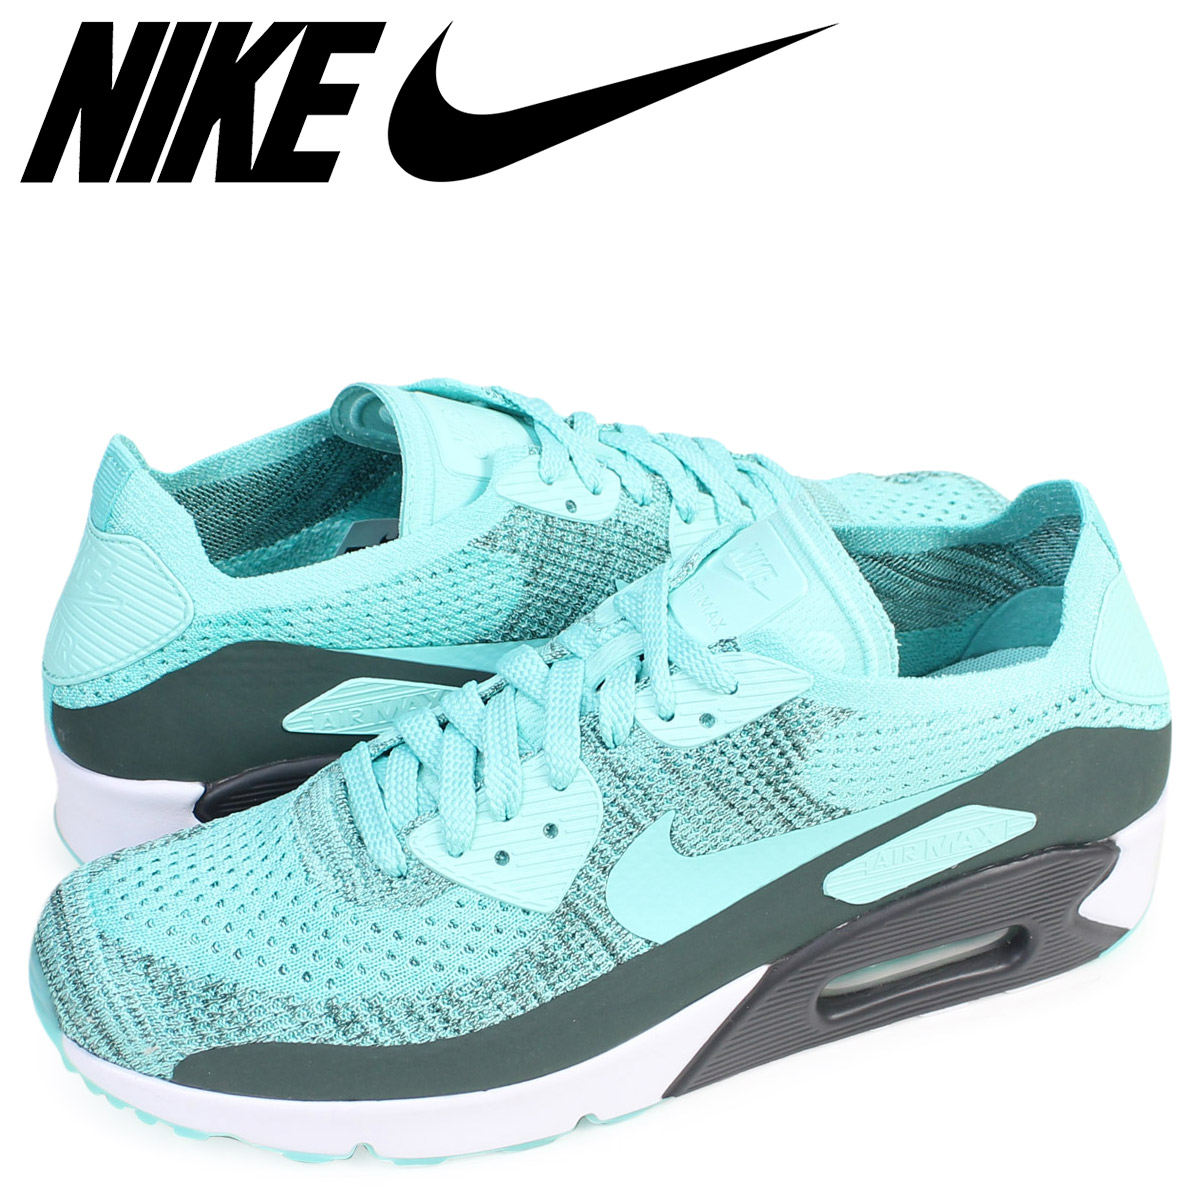 84bef9261925 NIKE Kie Ney AMAX 90 ultra fly knit sneakers AIR MAX 90 ULTRA 2.0 FLYKNIT  875